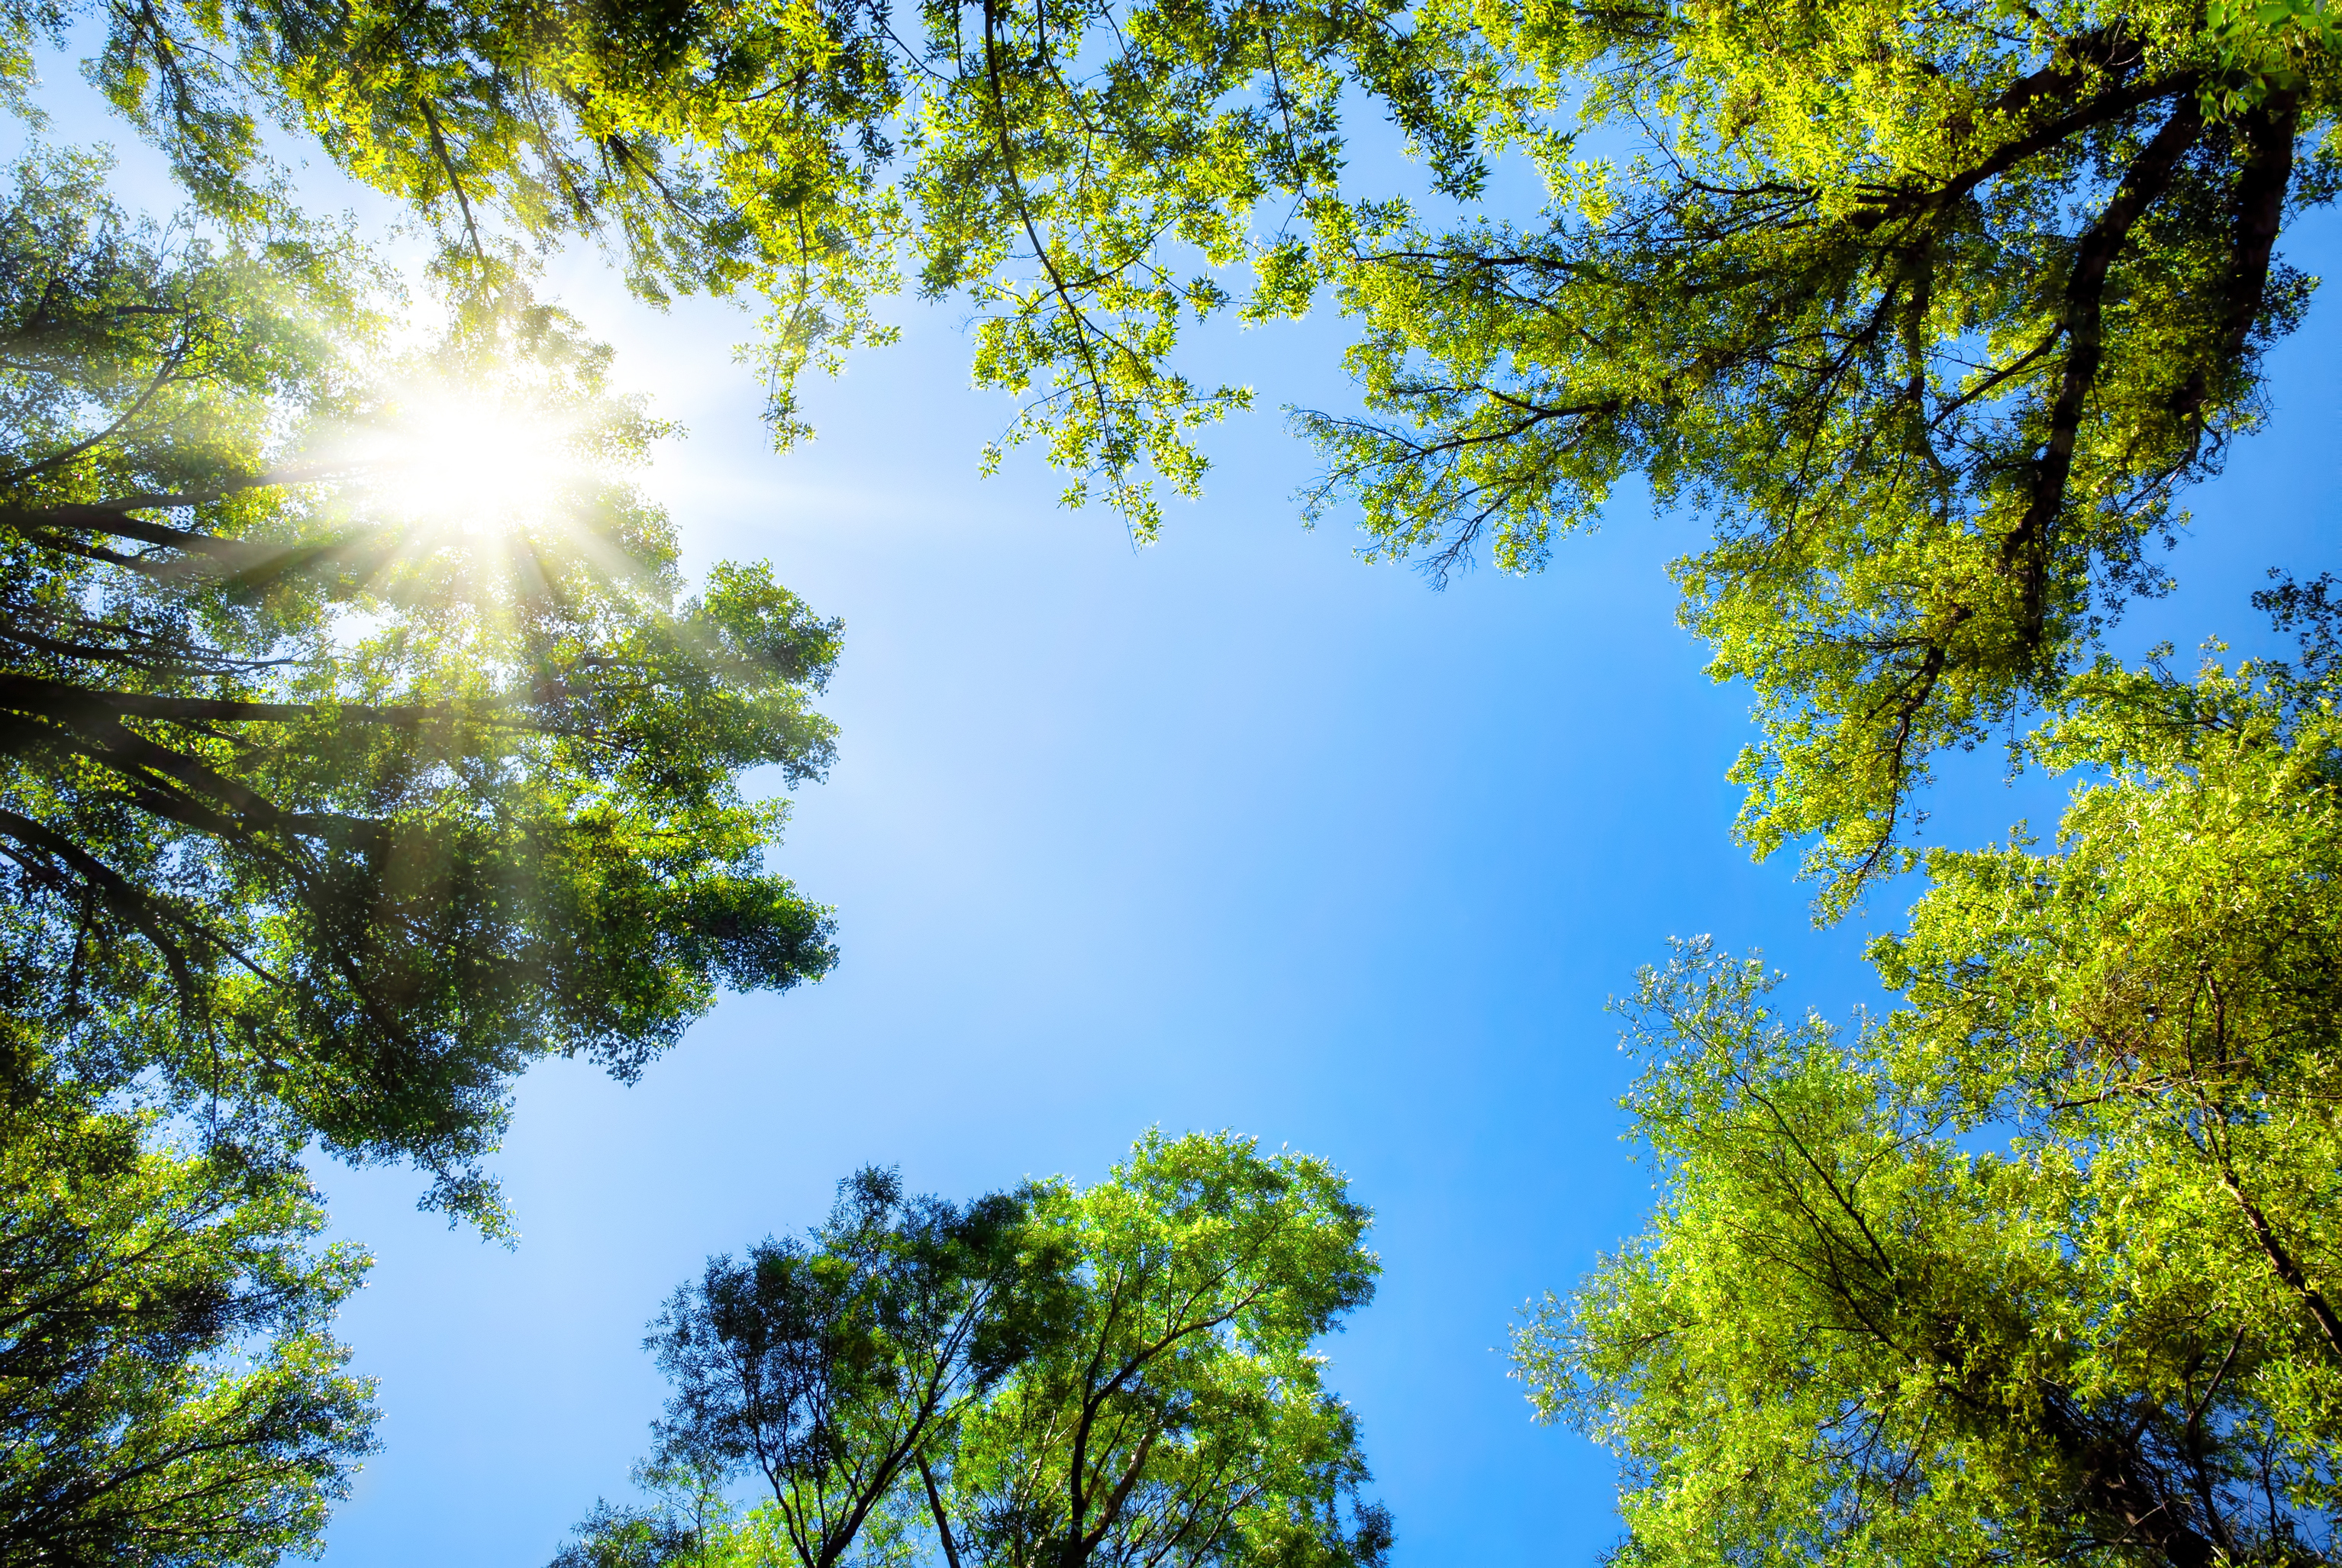 Climate change impacts reports: Warmer, wetter weather will alter Indiana's forests, urban greenspaces